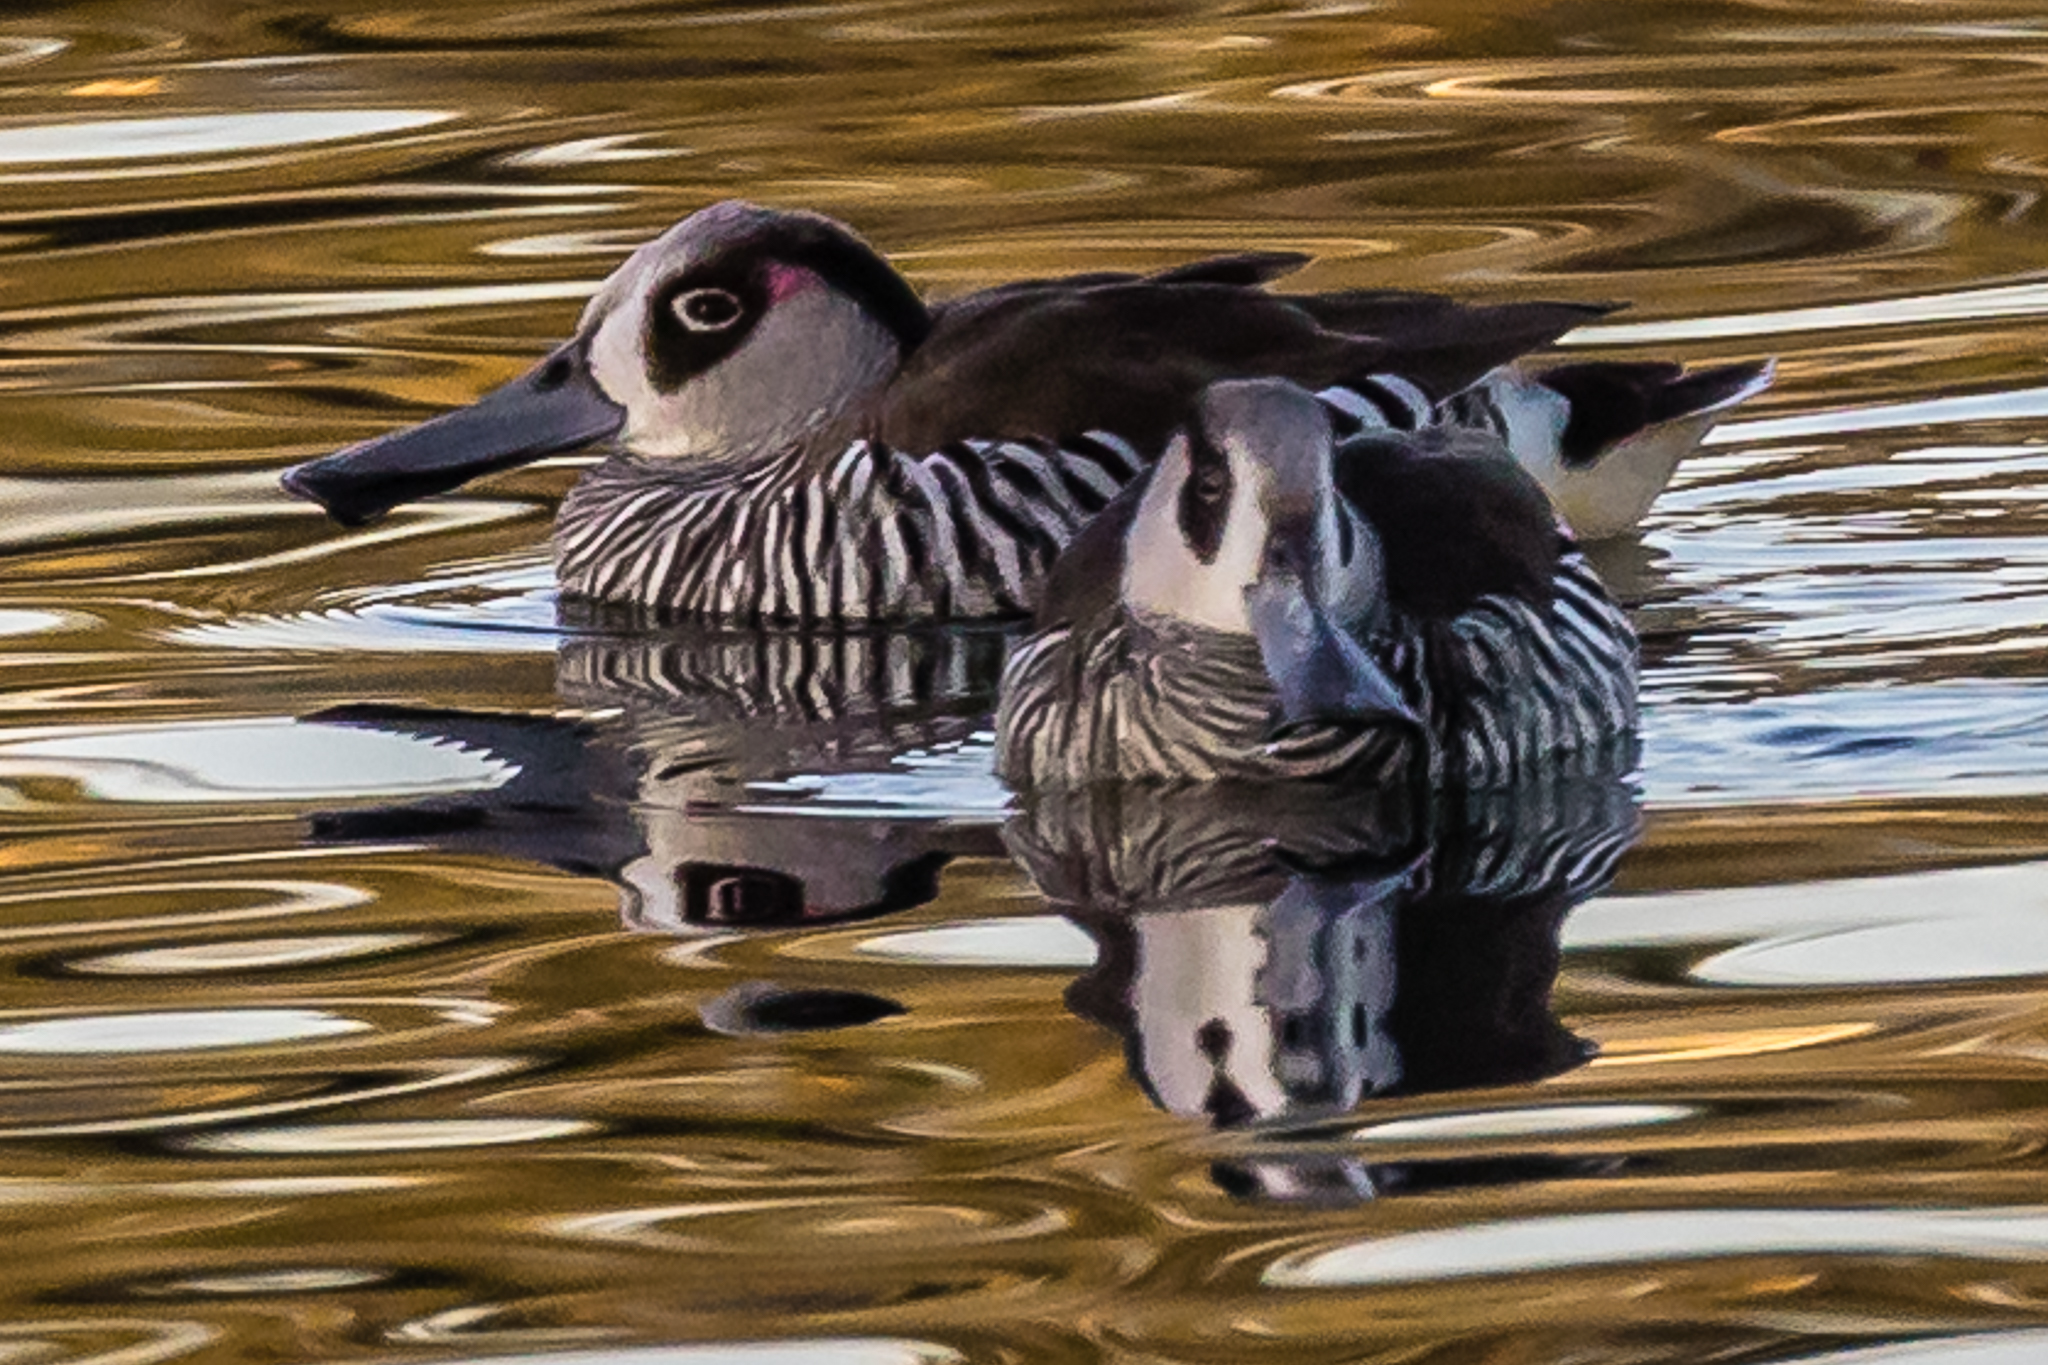 The Pink-eared Duck (45 cm) is found across most of Australia on inland wetlands. Pink-eared Ducks feed on plant and animal matter filtered through their specially adapted bill.